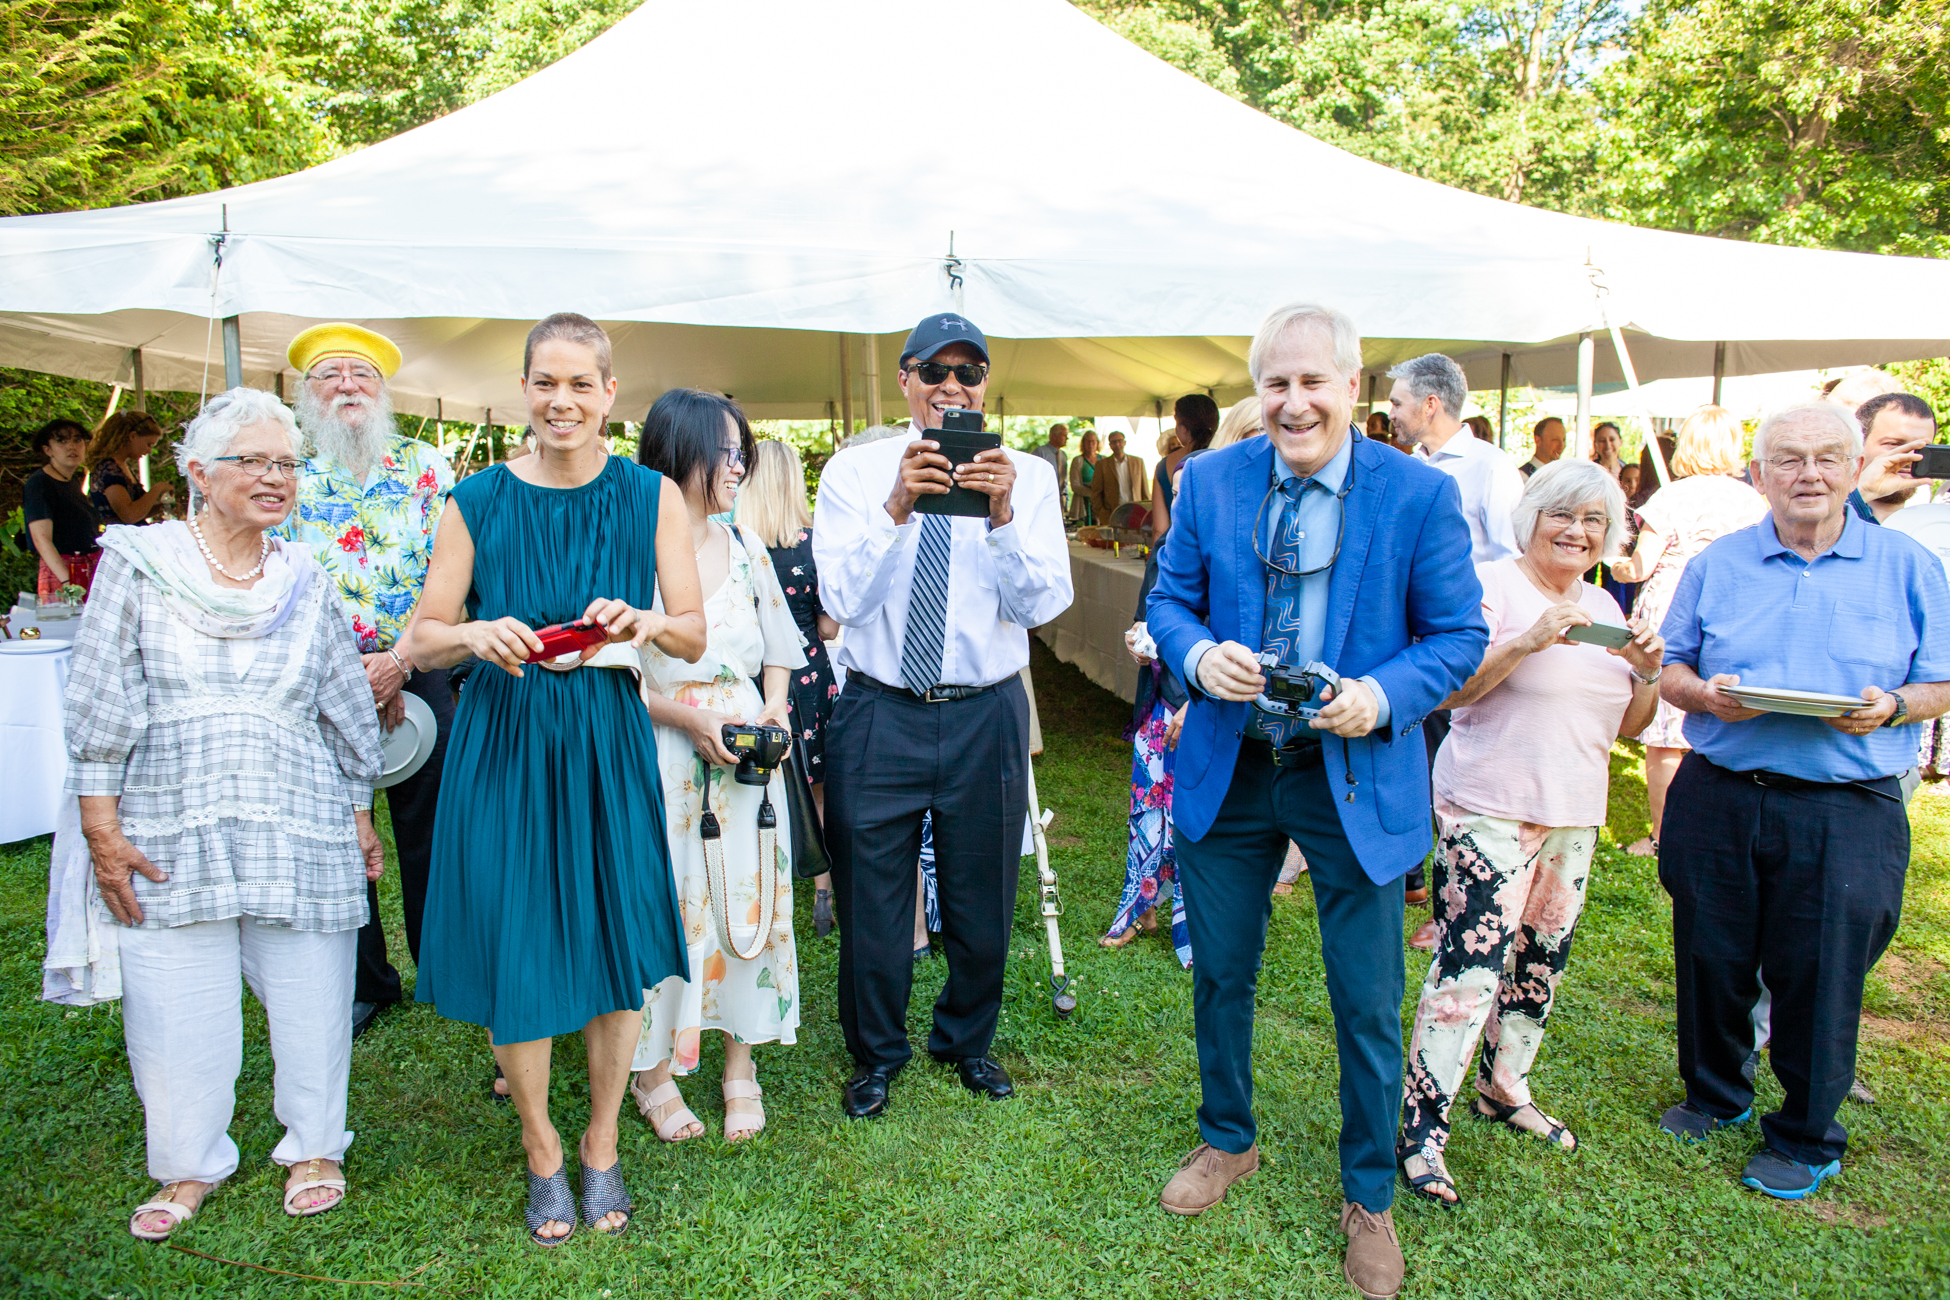 MaryFatimah and Noah's Summer Wedding at Bawa Muhaiyaddeen Fellowship Farm by Avi Loren Fox LLC-30.jpg